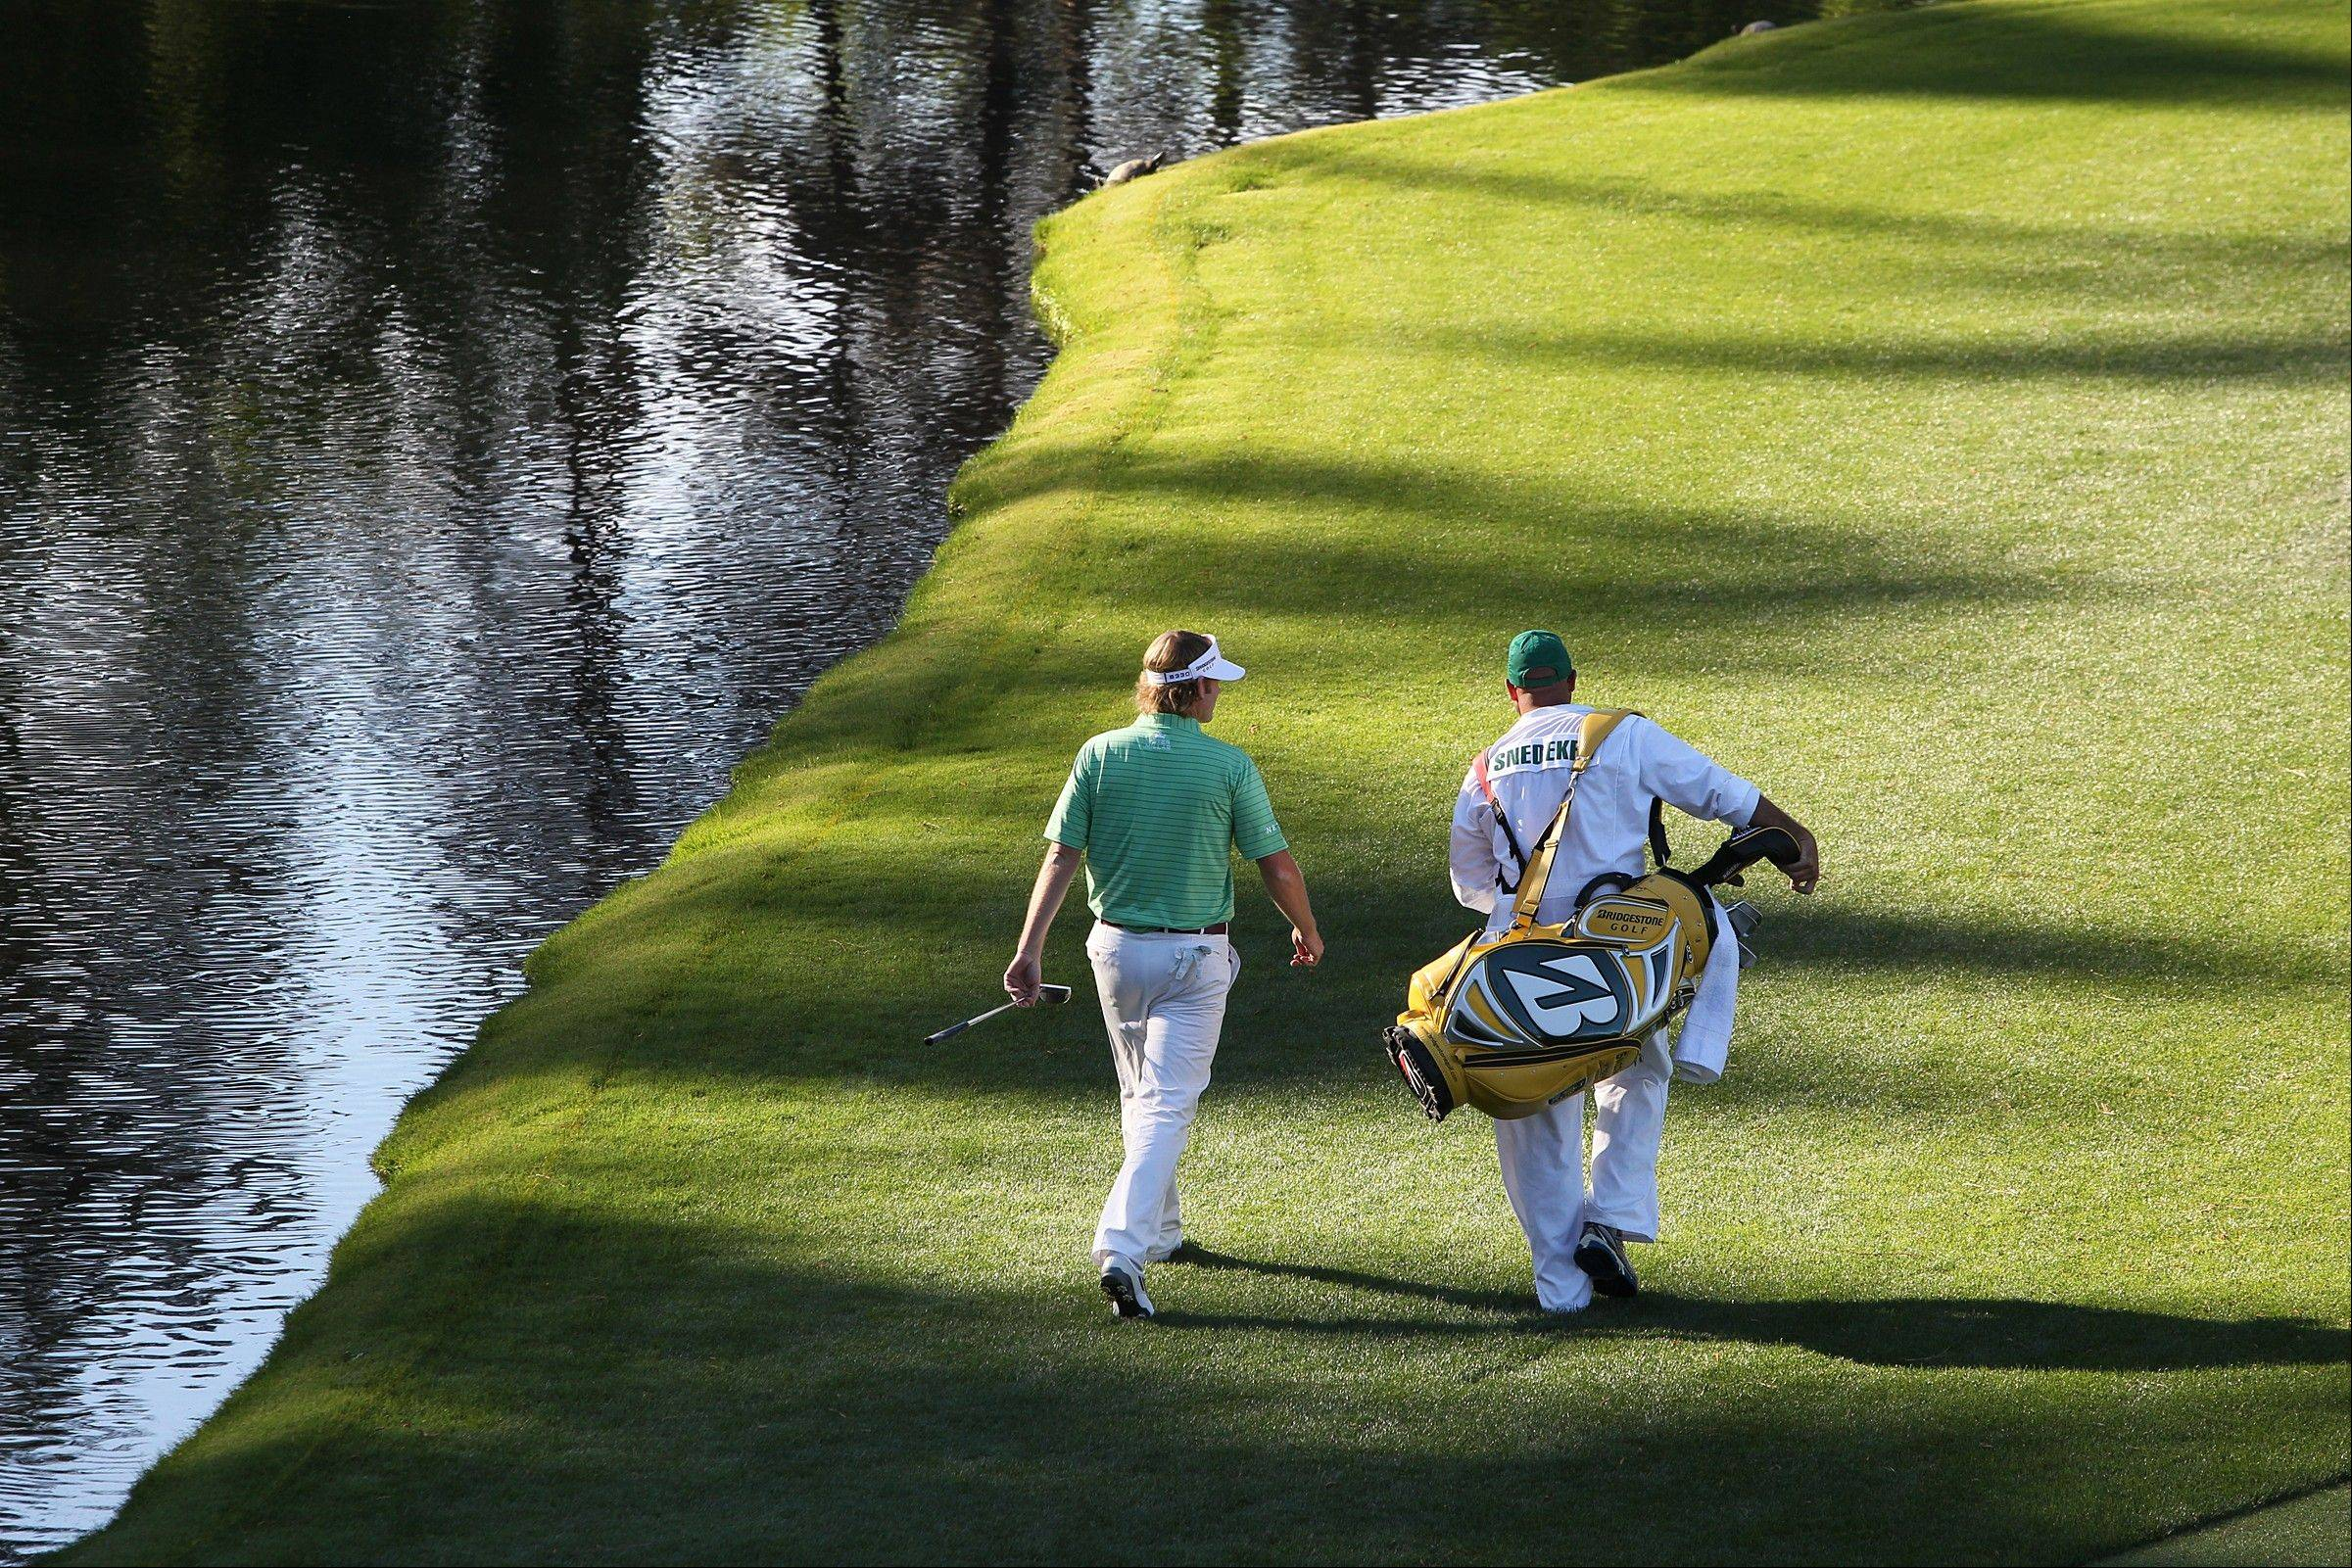 Brandt Snedeker strolls to the 16th green during the third round of the Masters golf tournament, on Saturday, April 13, 2013, in Augusta, Ga.